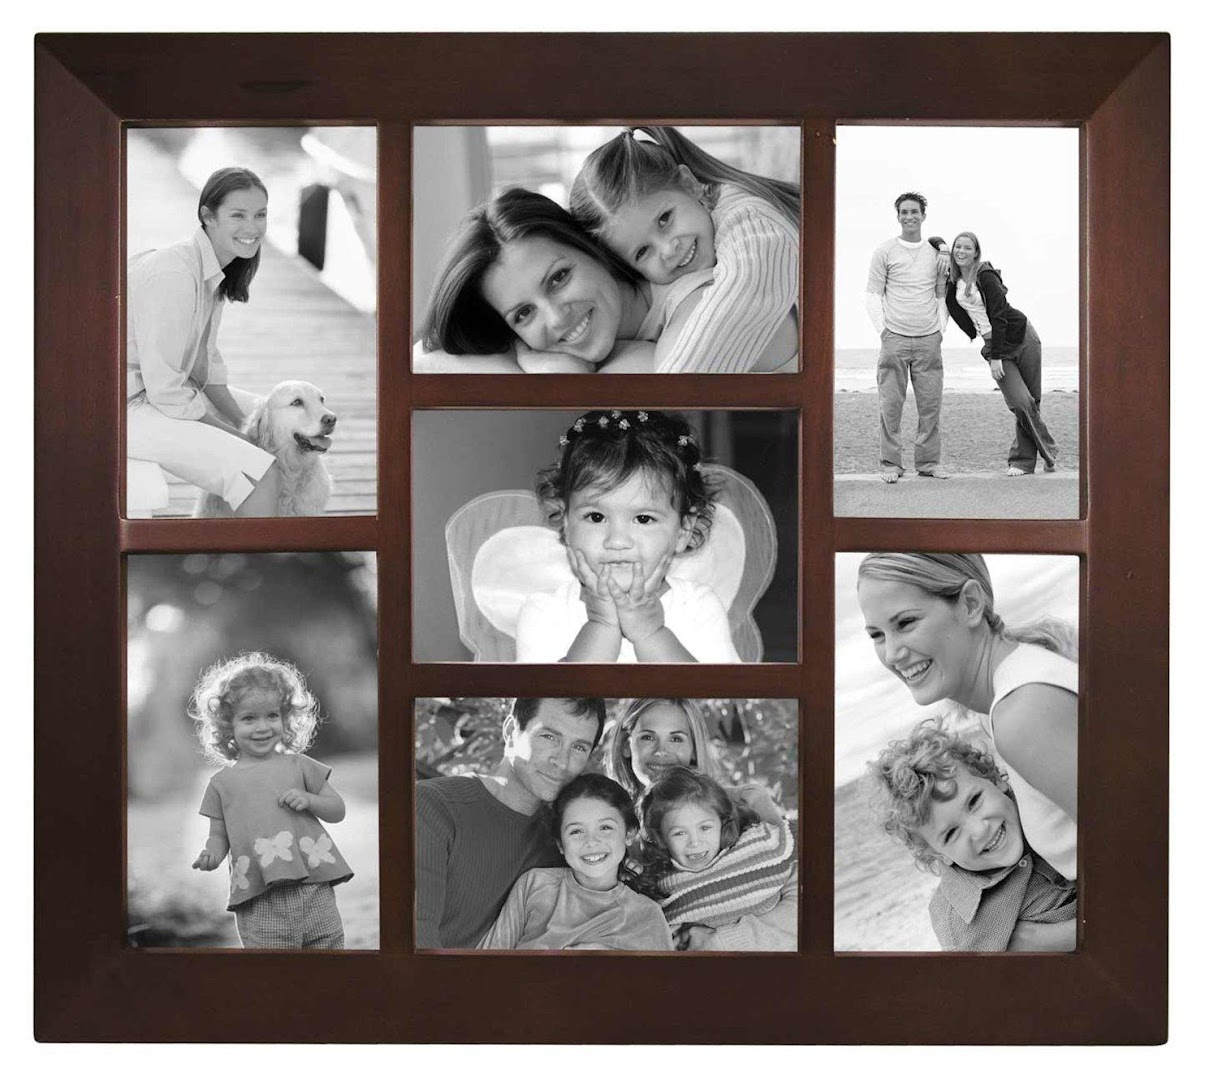 family photo frames app free google play store revenue download estimates us